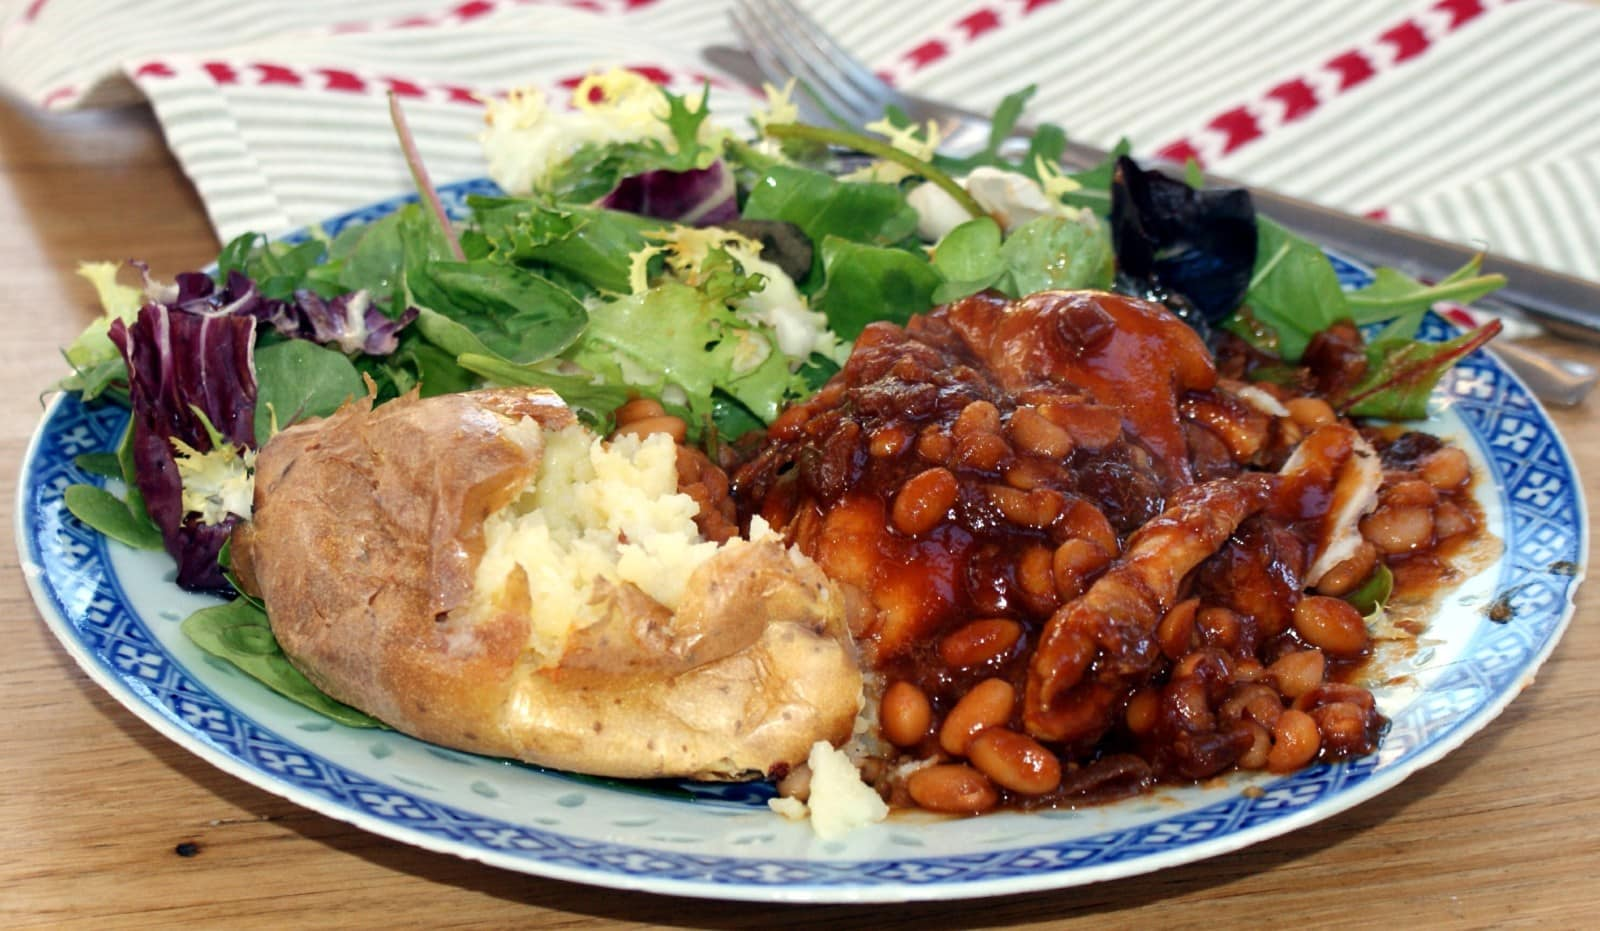 Honey and Soy chicken on a blue patterned plate with baked potato and sala